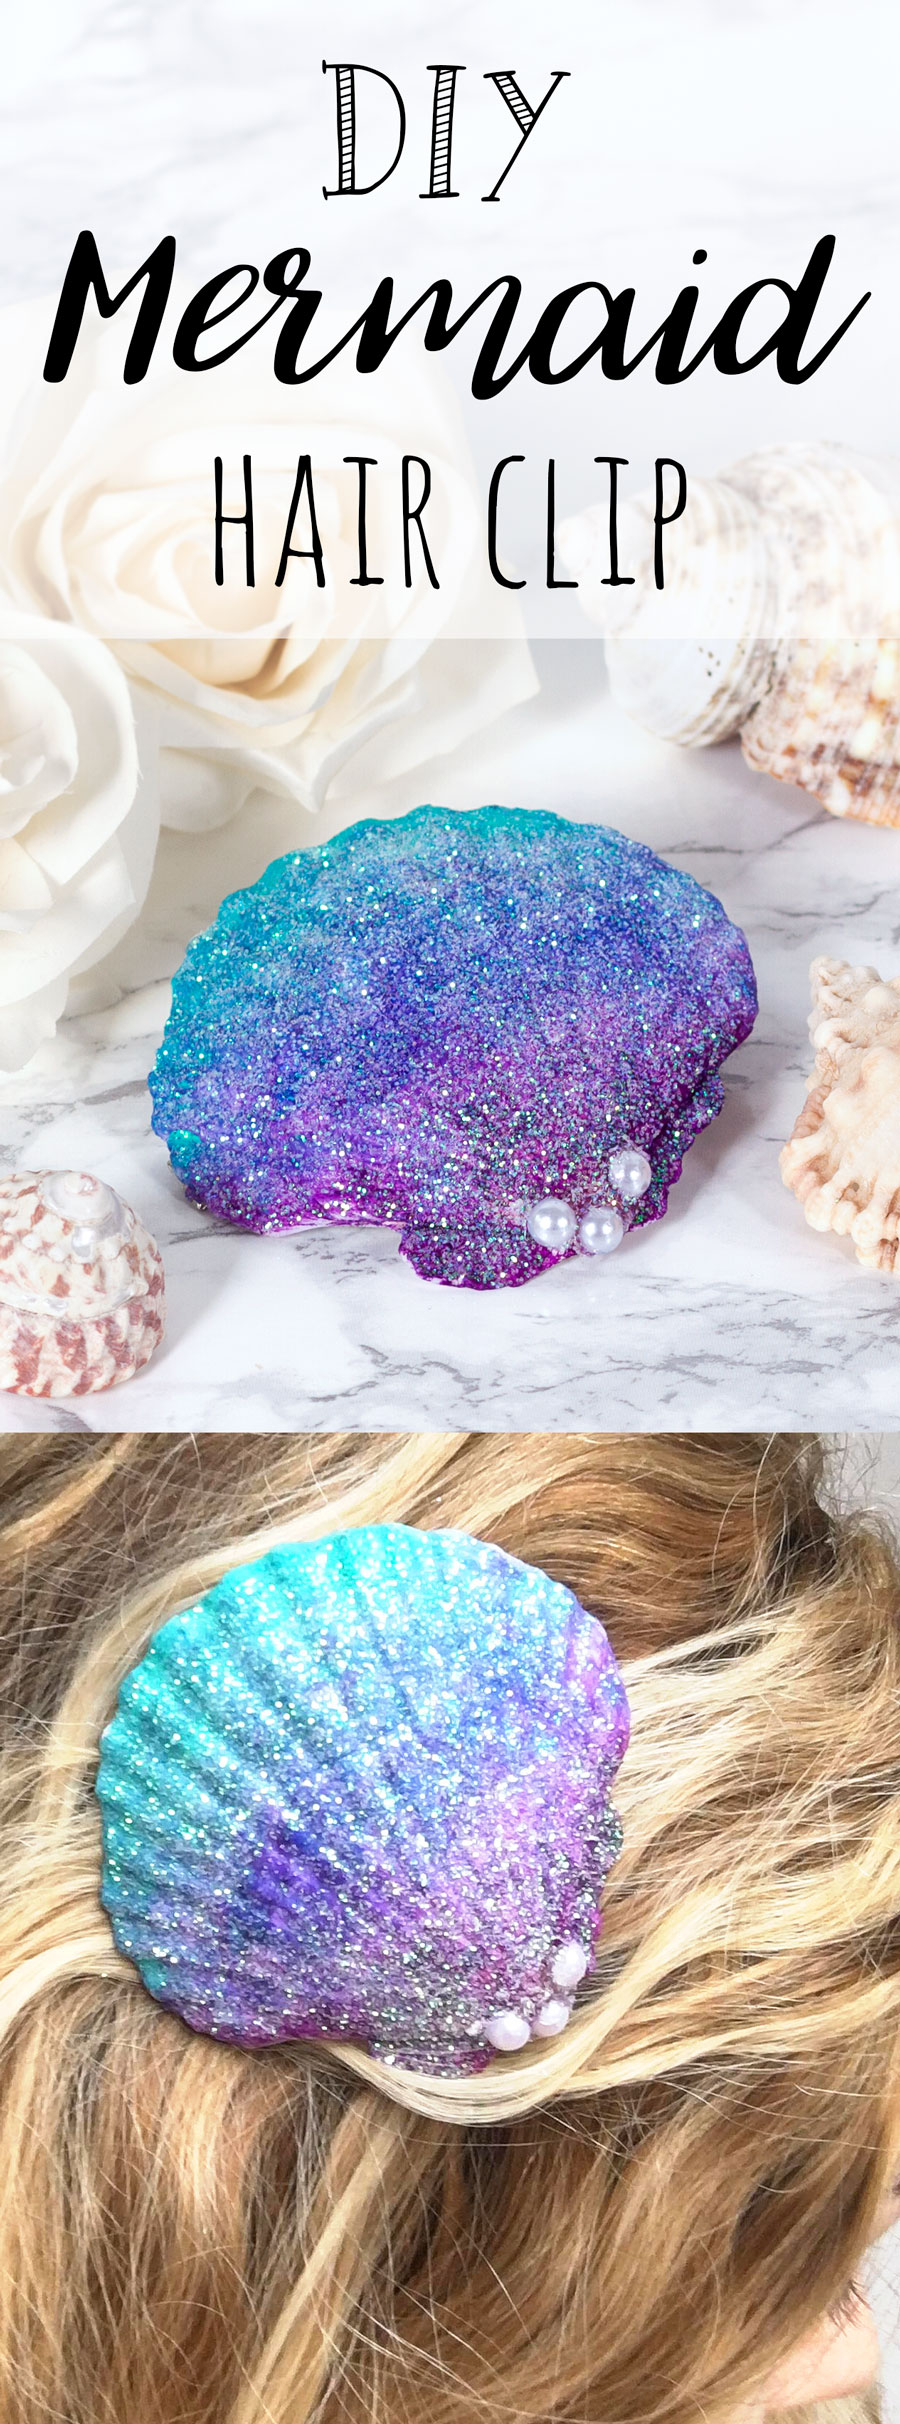 mermaid shell craft